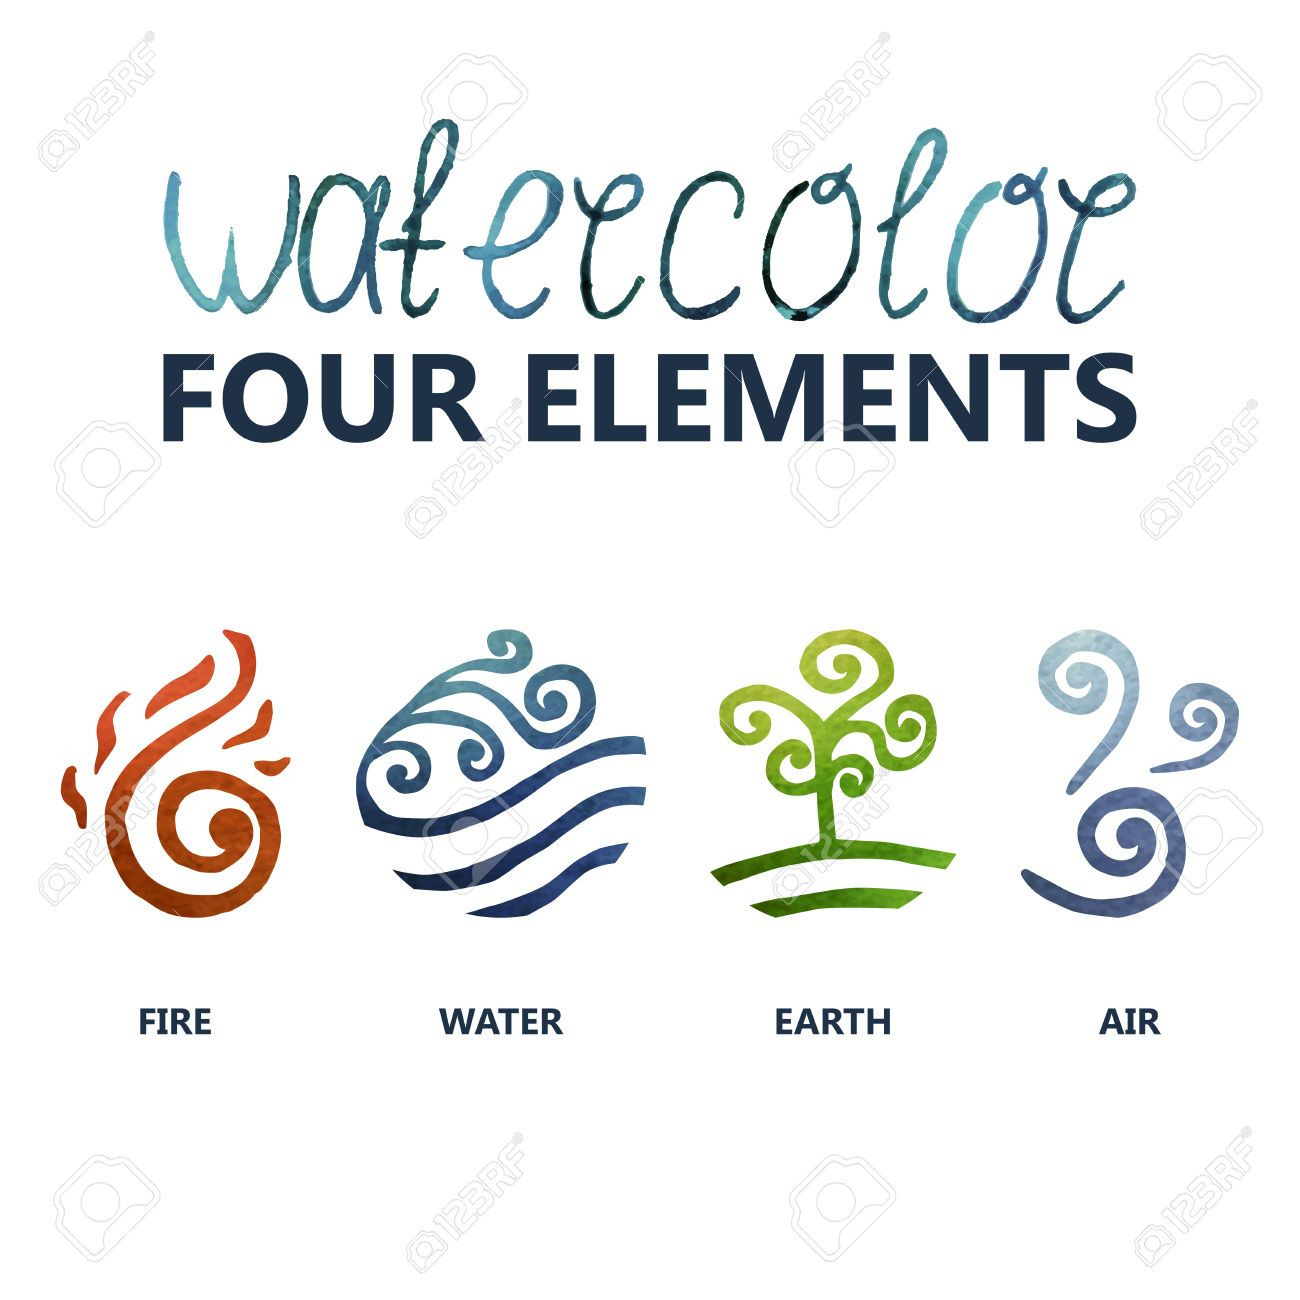 Fire Water Earth Air 4 Elements Pinterest Symbols Tattoos